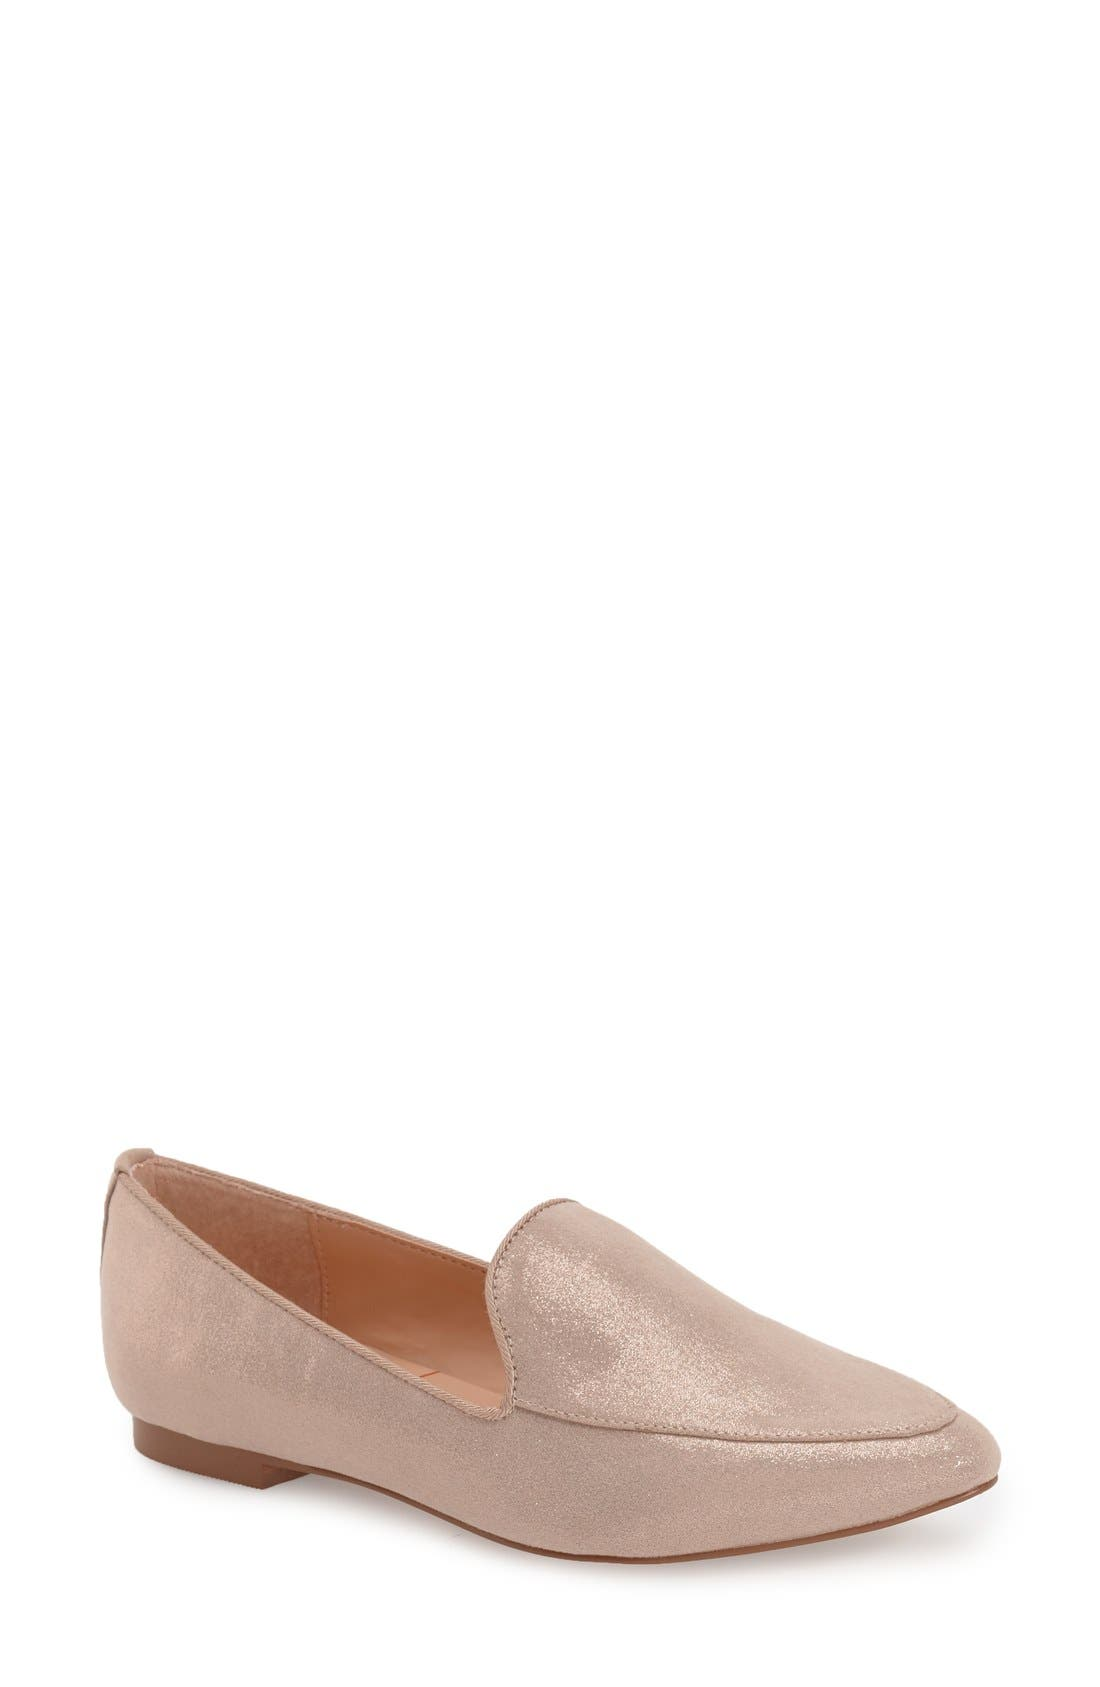 'Sean' Pointy Toe Loafer,                         Main,                         color, Nude Metallic